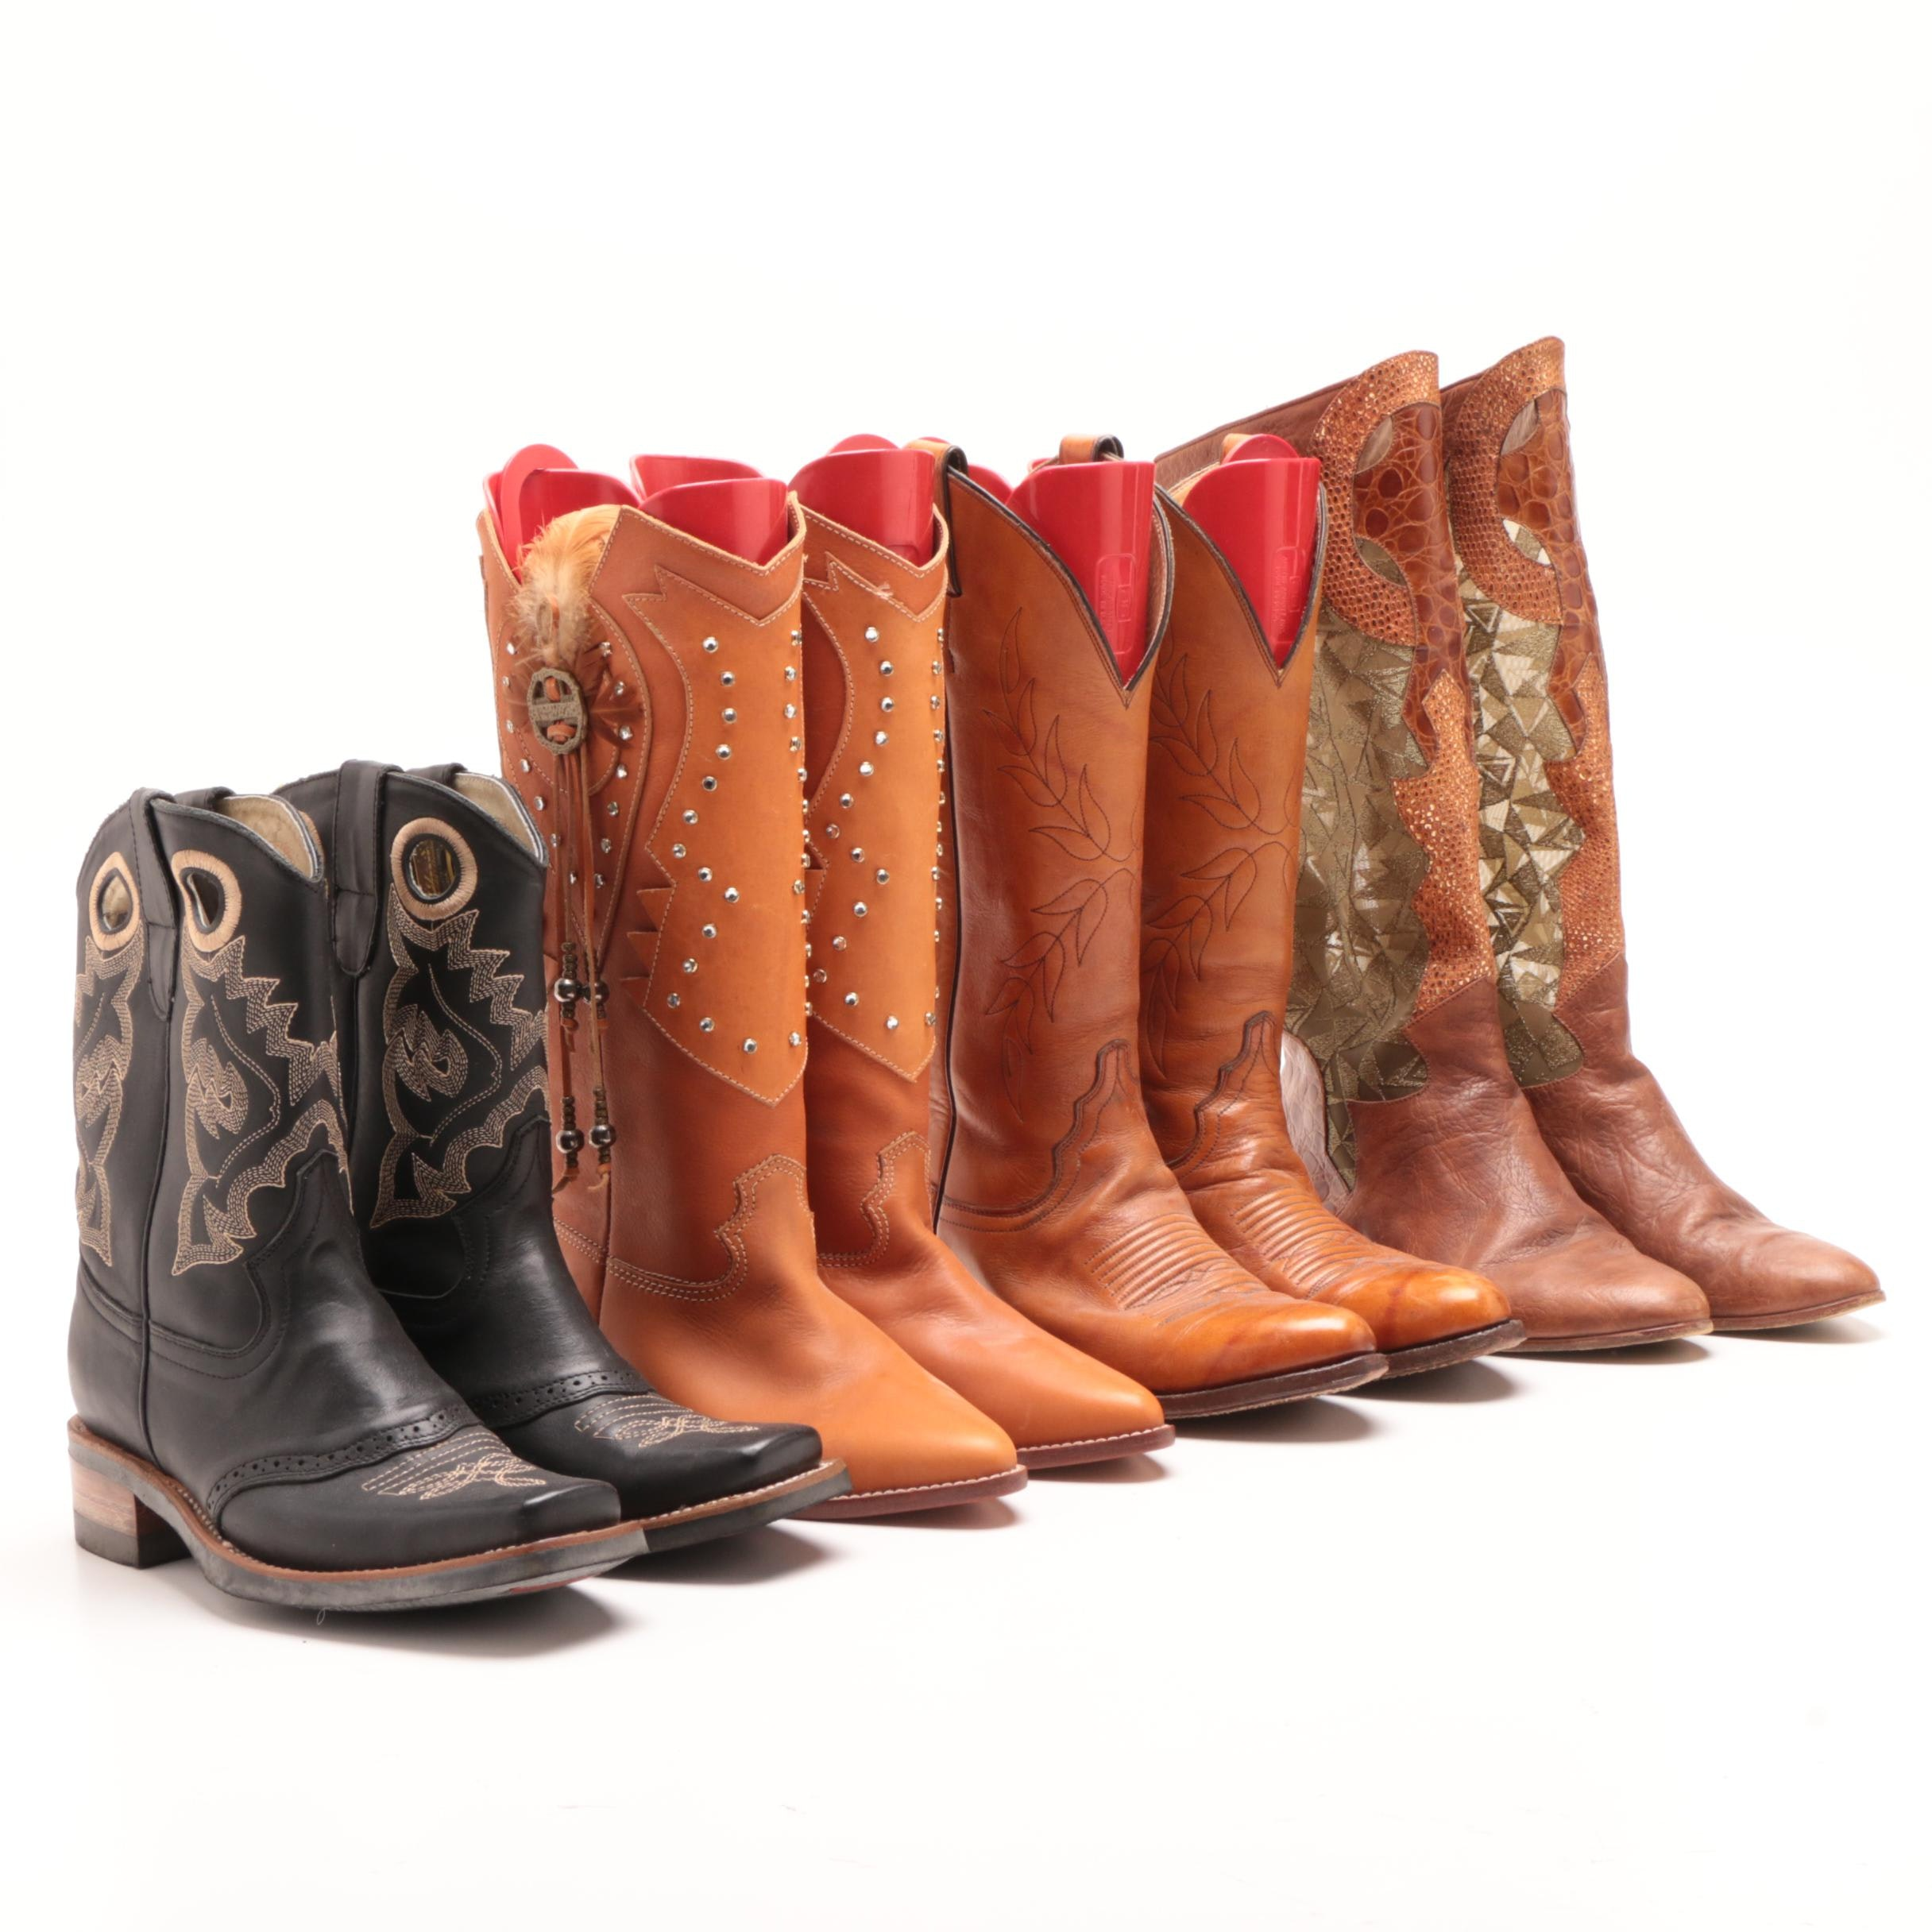 Women's Justin Cowboy Boots and Other Western Style Boots